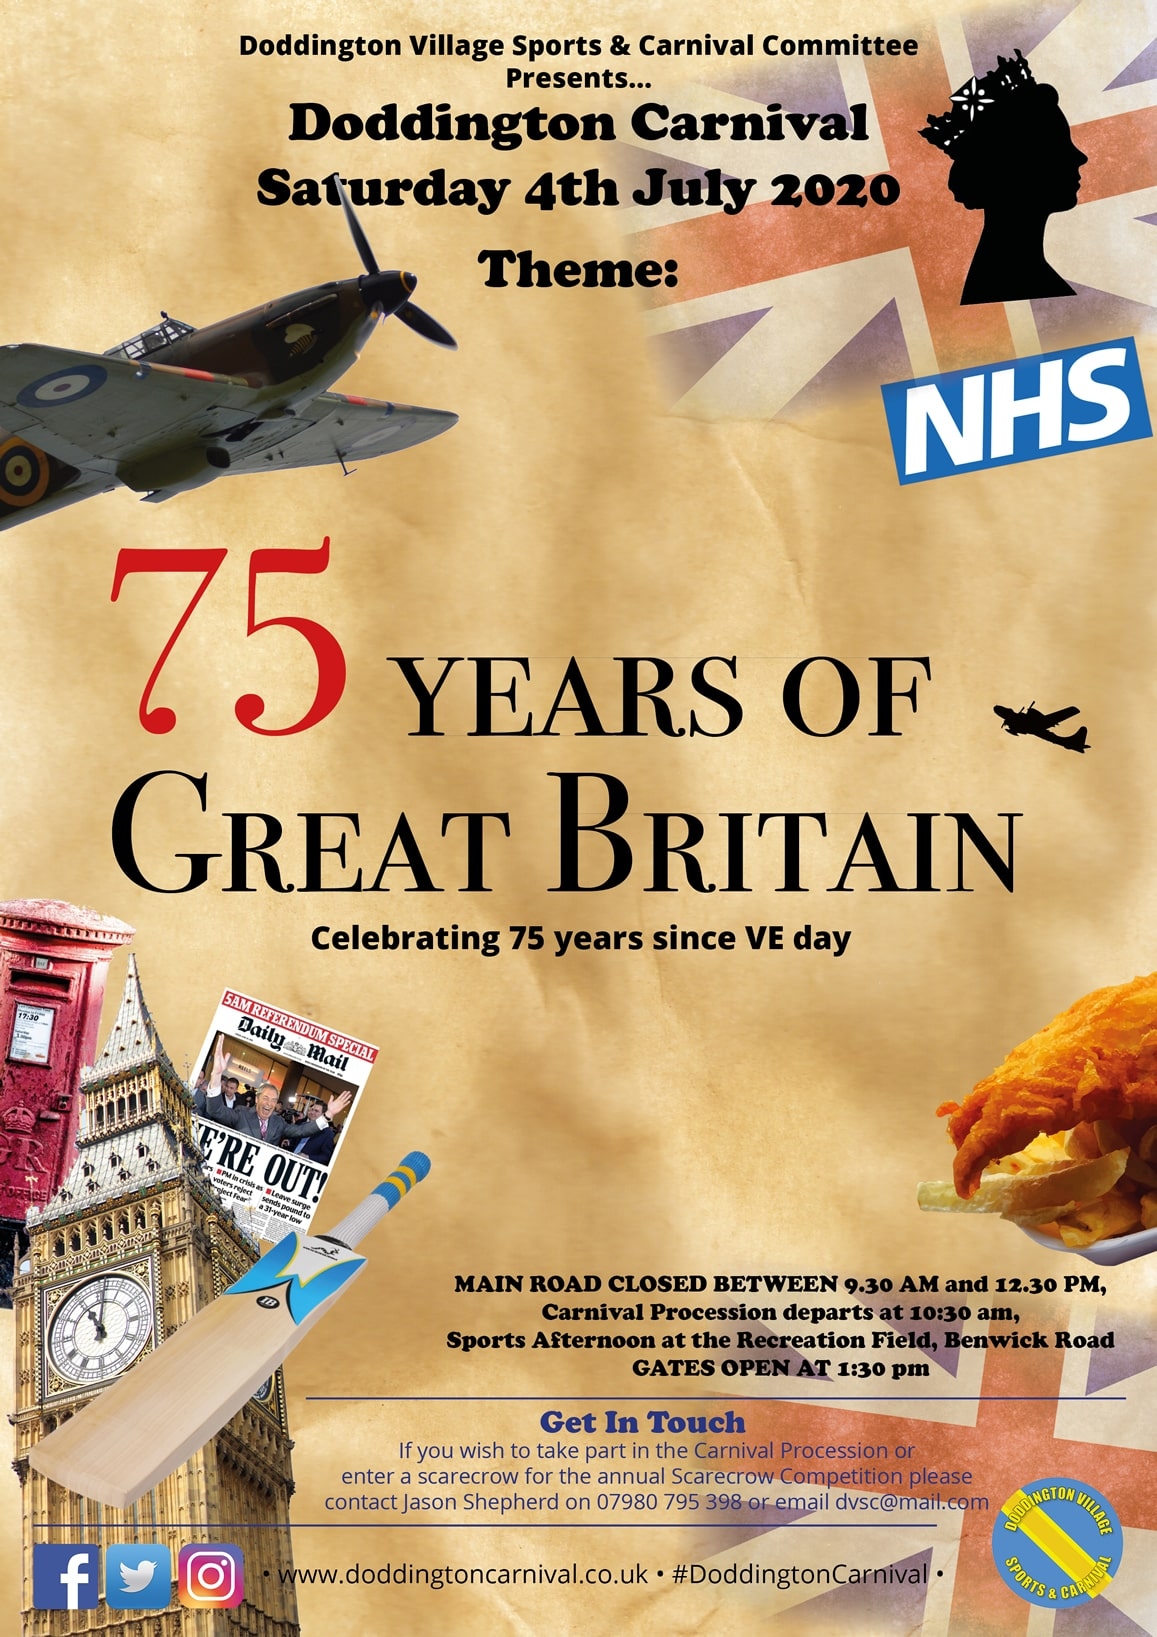 A portrait image showing that the theme for 2020 is '75 Years of Great Britain - Celebrating 75 Years since VE day', with lots of iconic images of a Spitfire plane, the NHS logo, Big Ben, a red Post Box, Fish and Chips, the Union Flag and more.